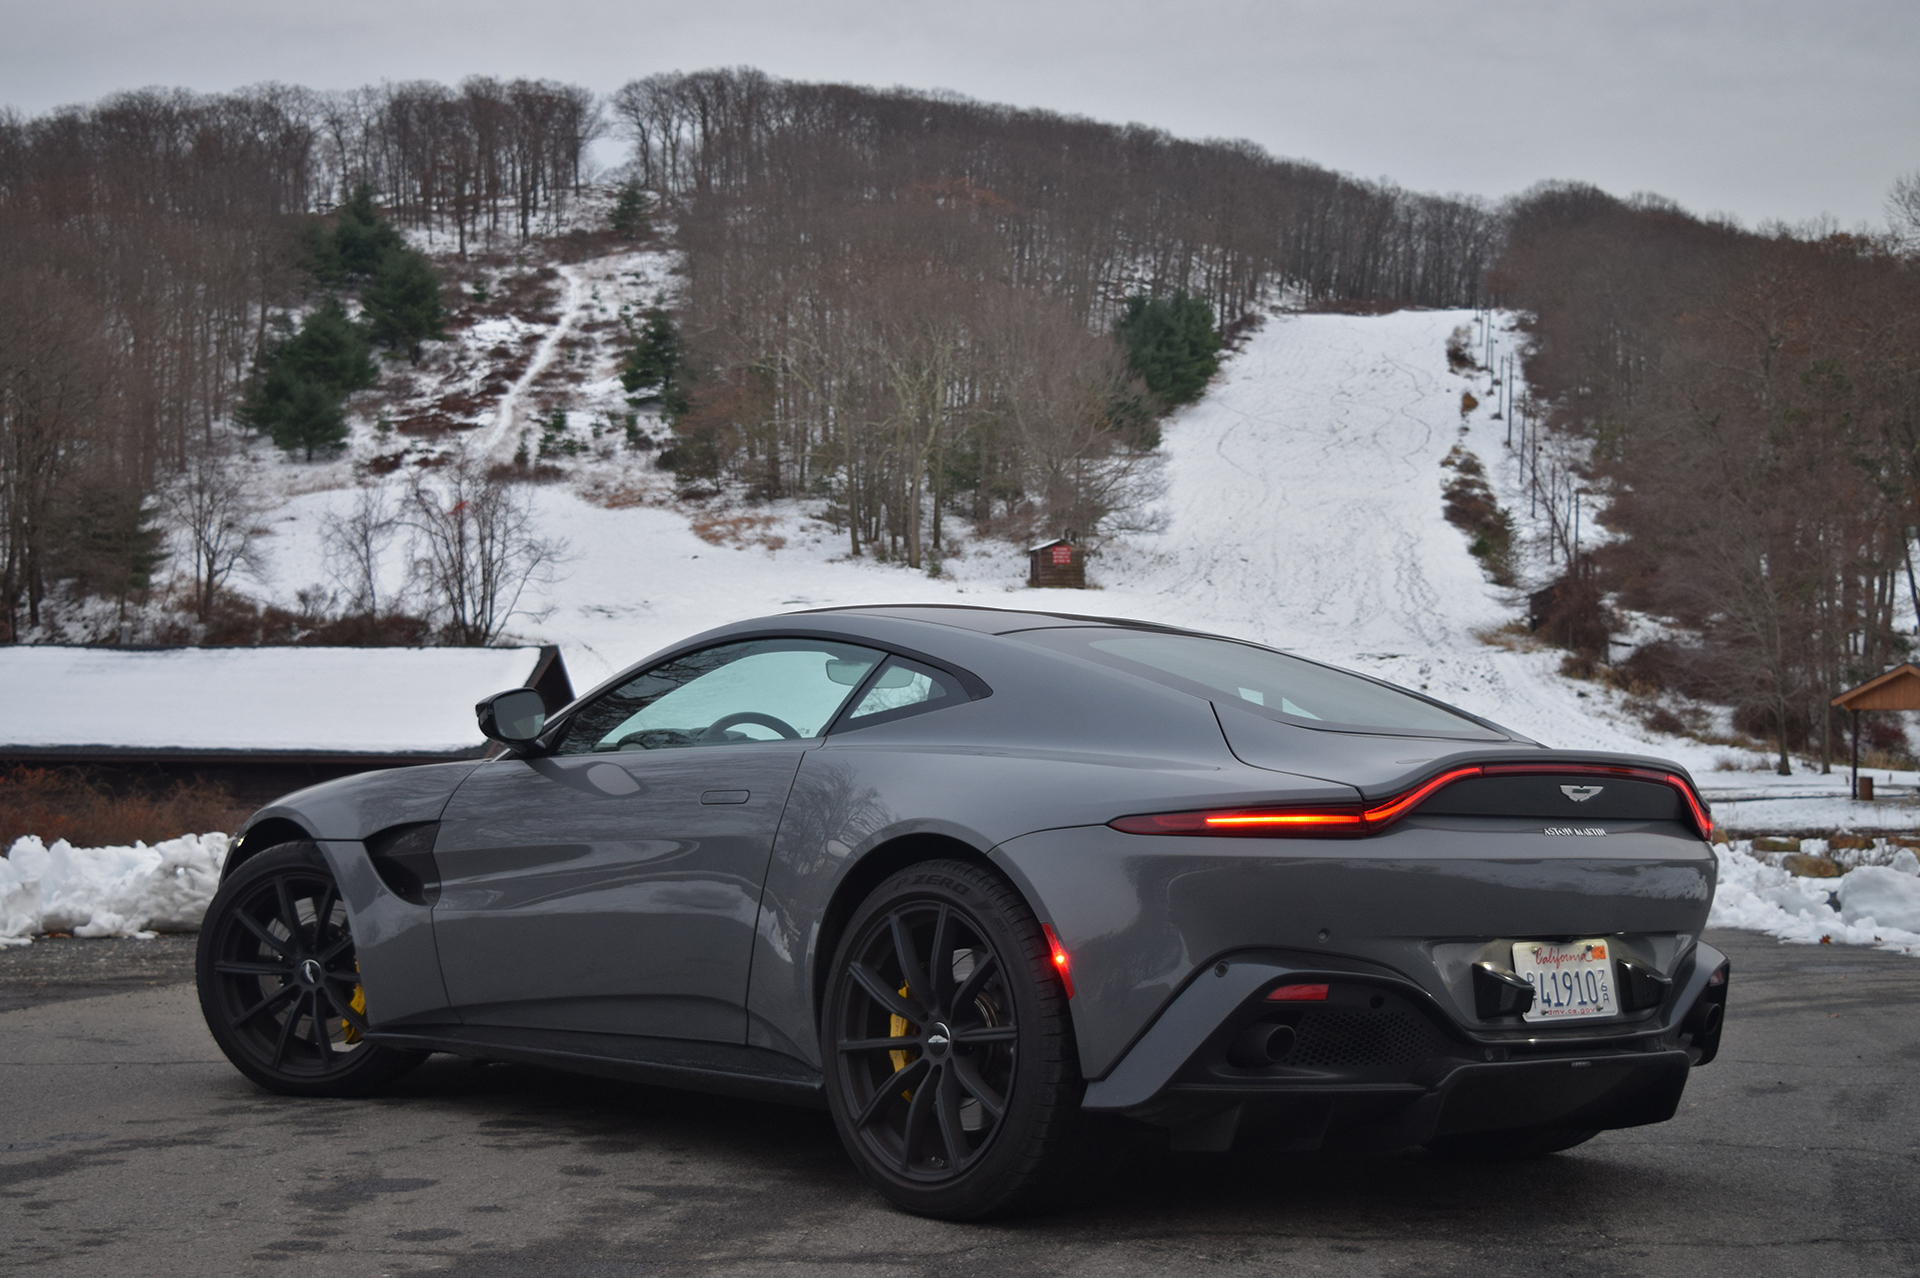 2019 Aston Martin Test Drive Review Tradition Is Out Fun Is In And This Sports Car Is Better For It